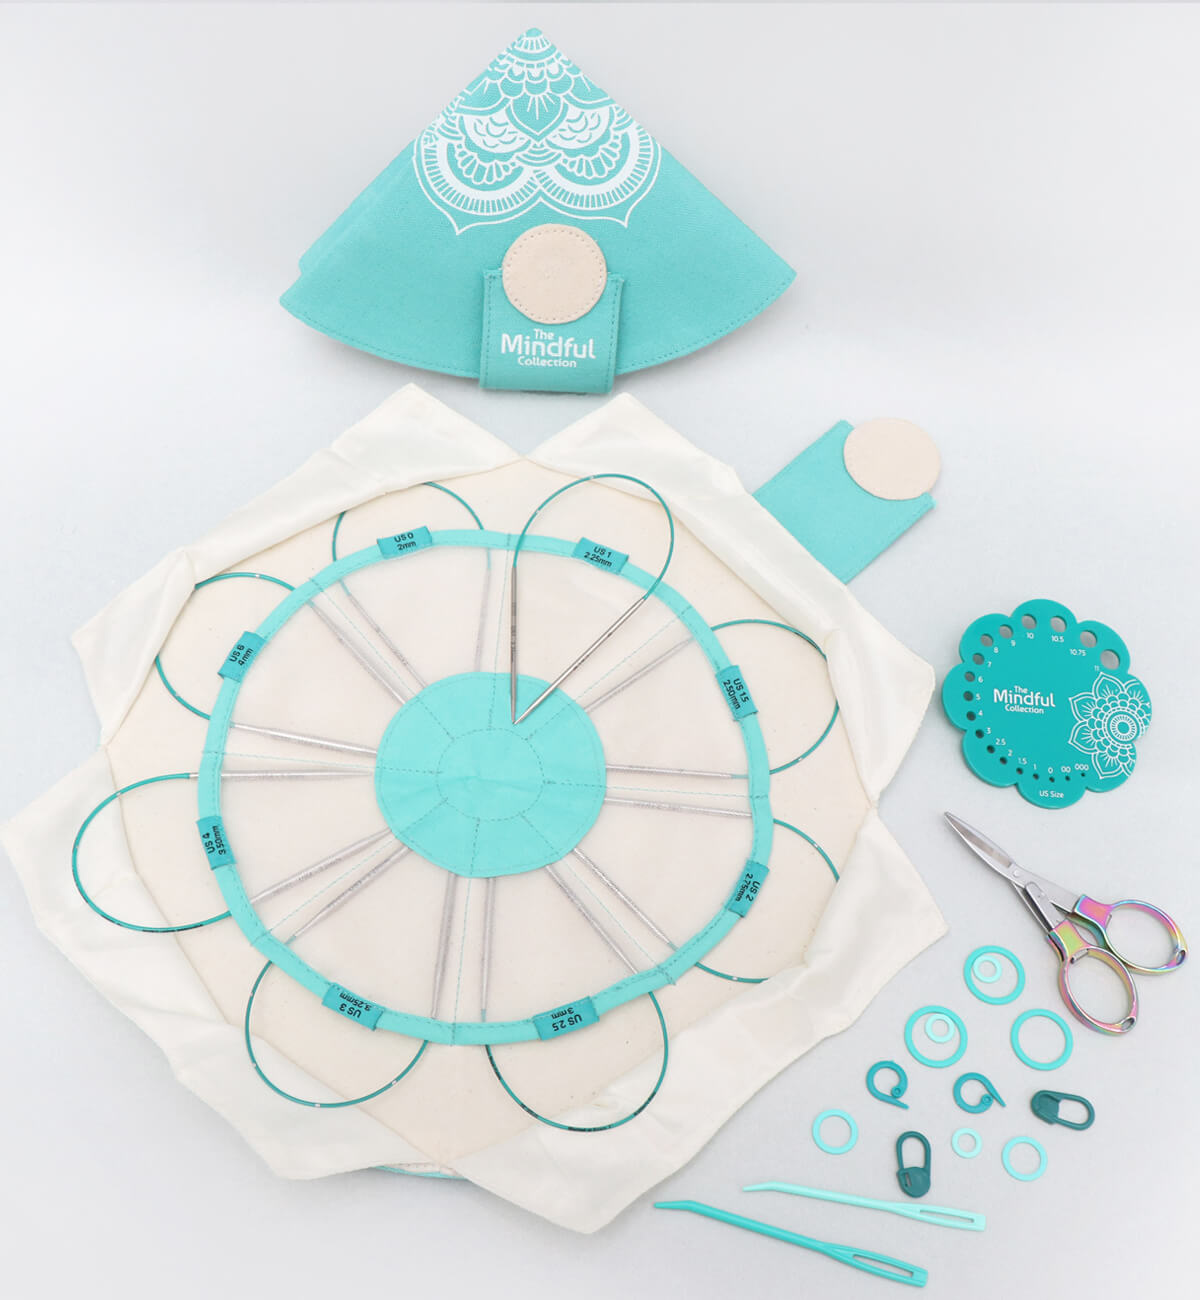 """Knitter's Pride Mindful Collection Explore Fixed 10"""" Circular Needle Set"""